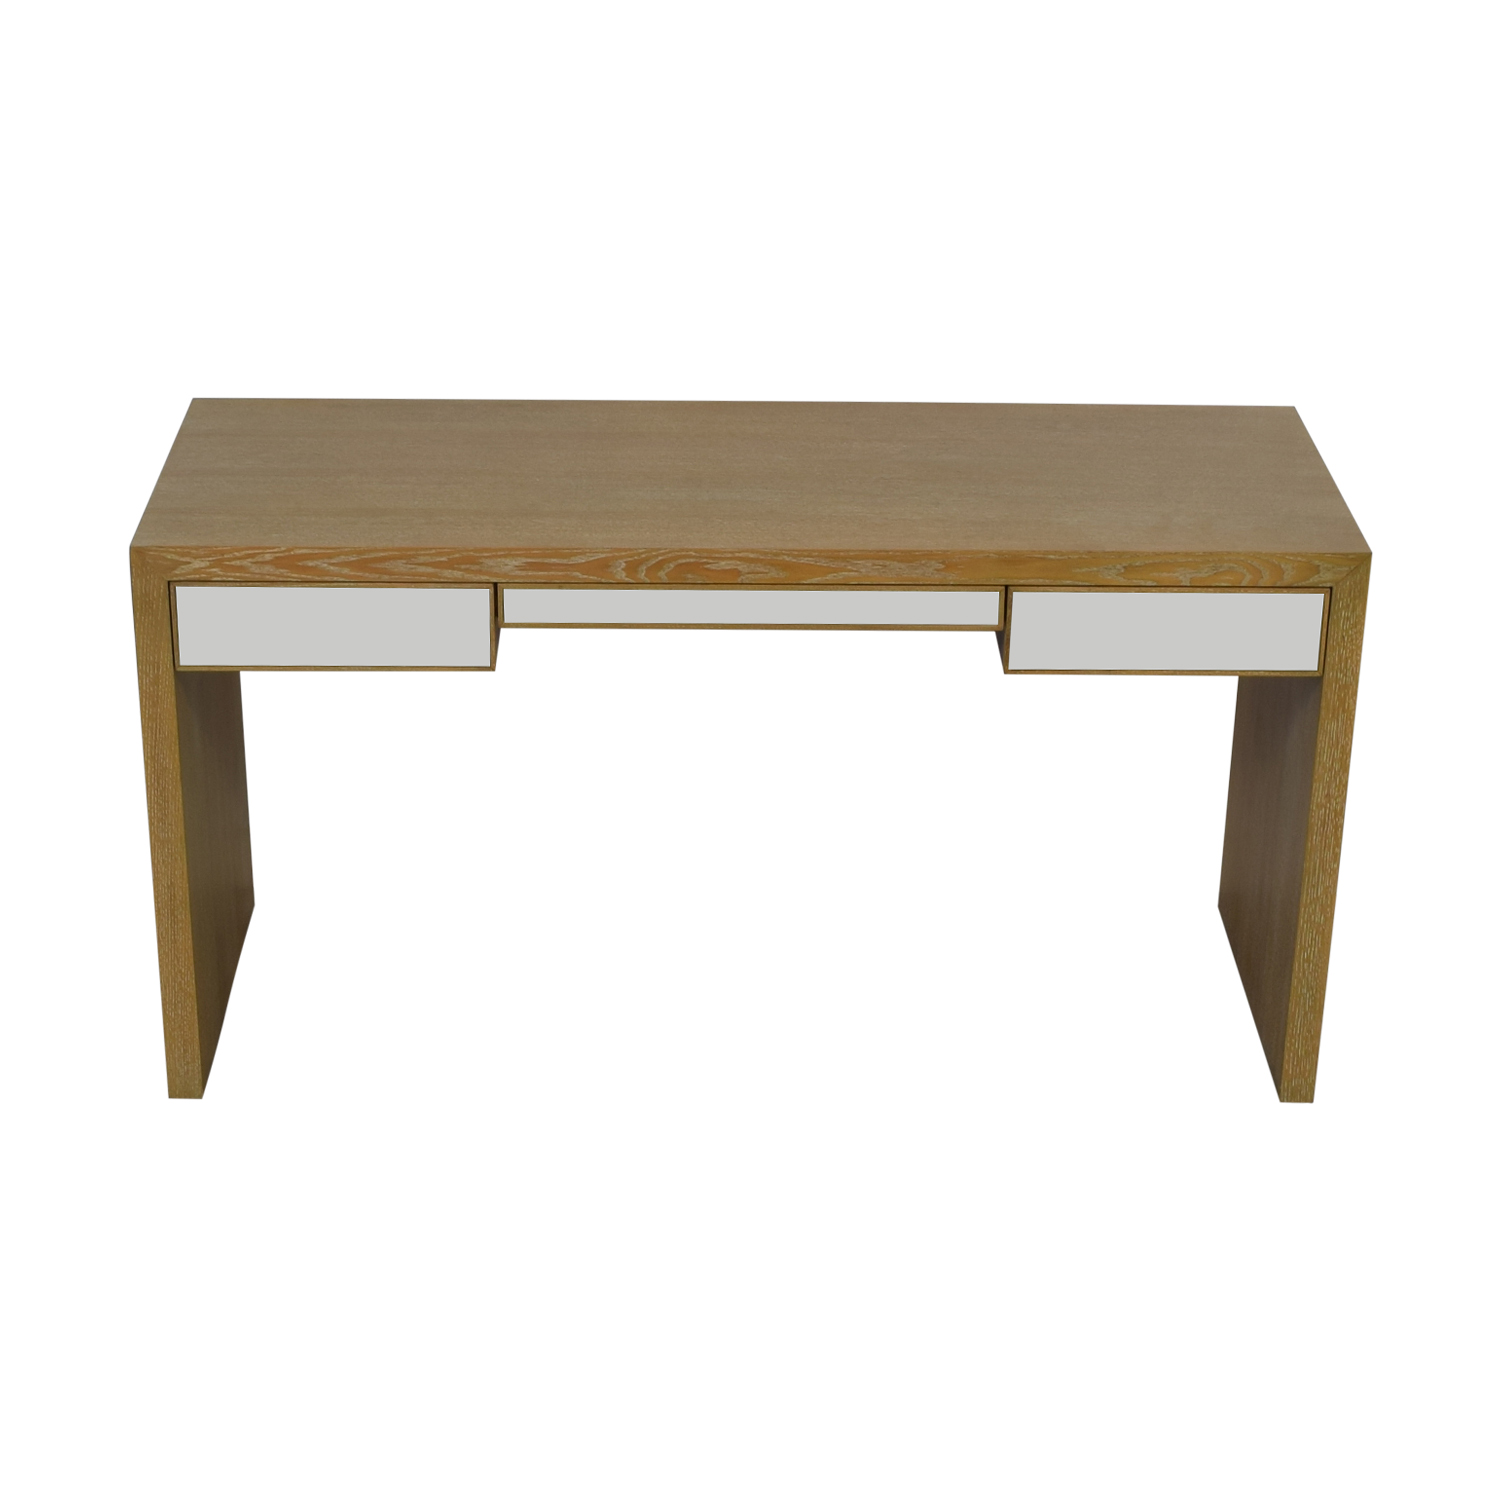 Mitchell Gold + Bob Williams Mitchell Gold + Bob Williams Fairbanks Mirror Desk Tables